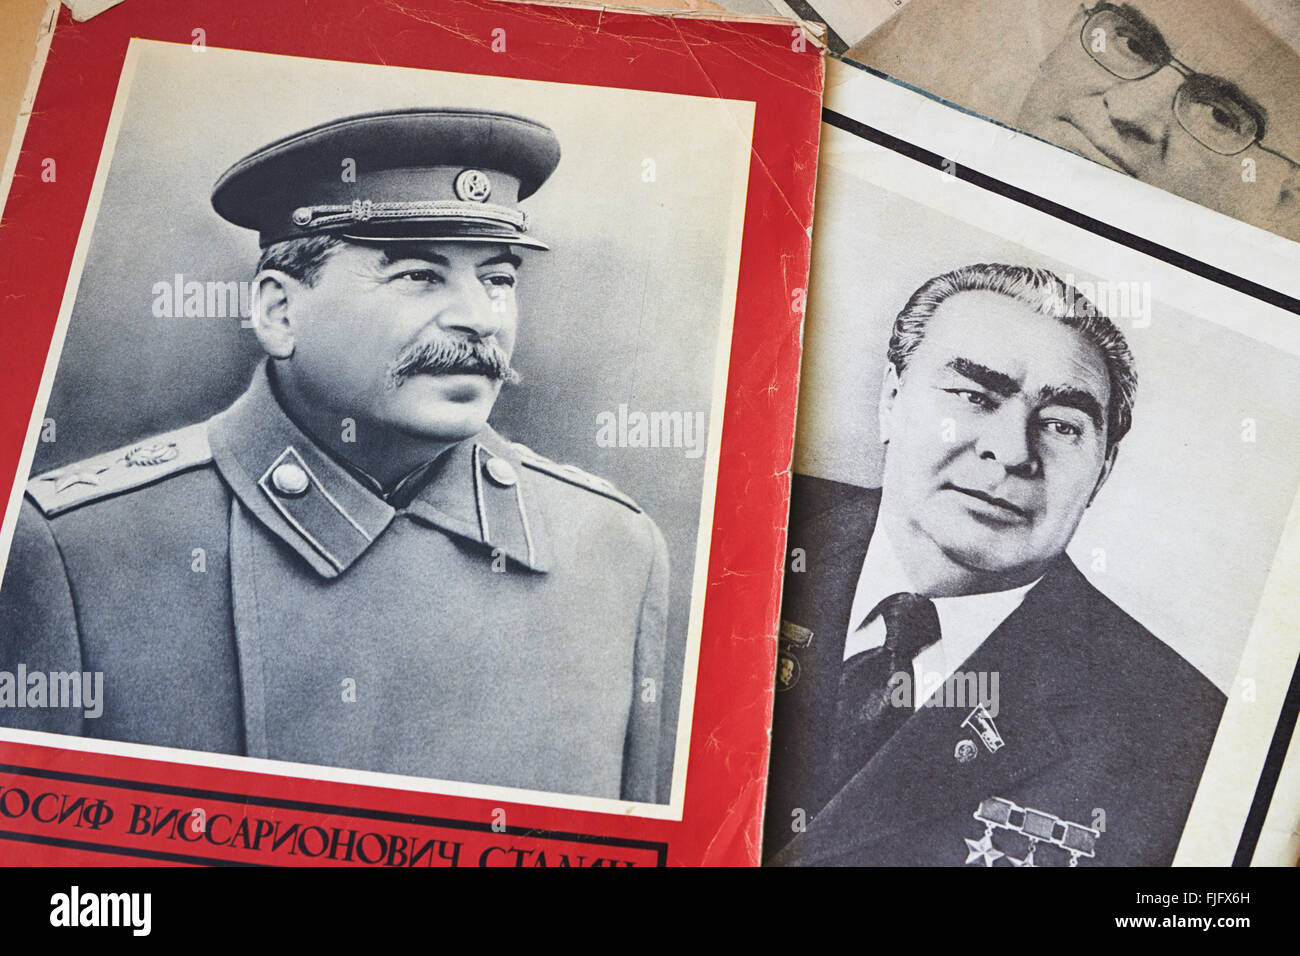 Mourning portraits of Stalin, Brezhnev and Andropov in old Soviet periodicals with news of the death of the leaders - Stock Image